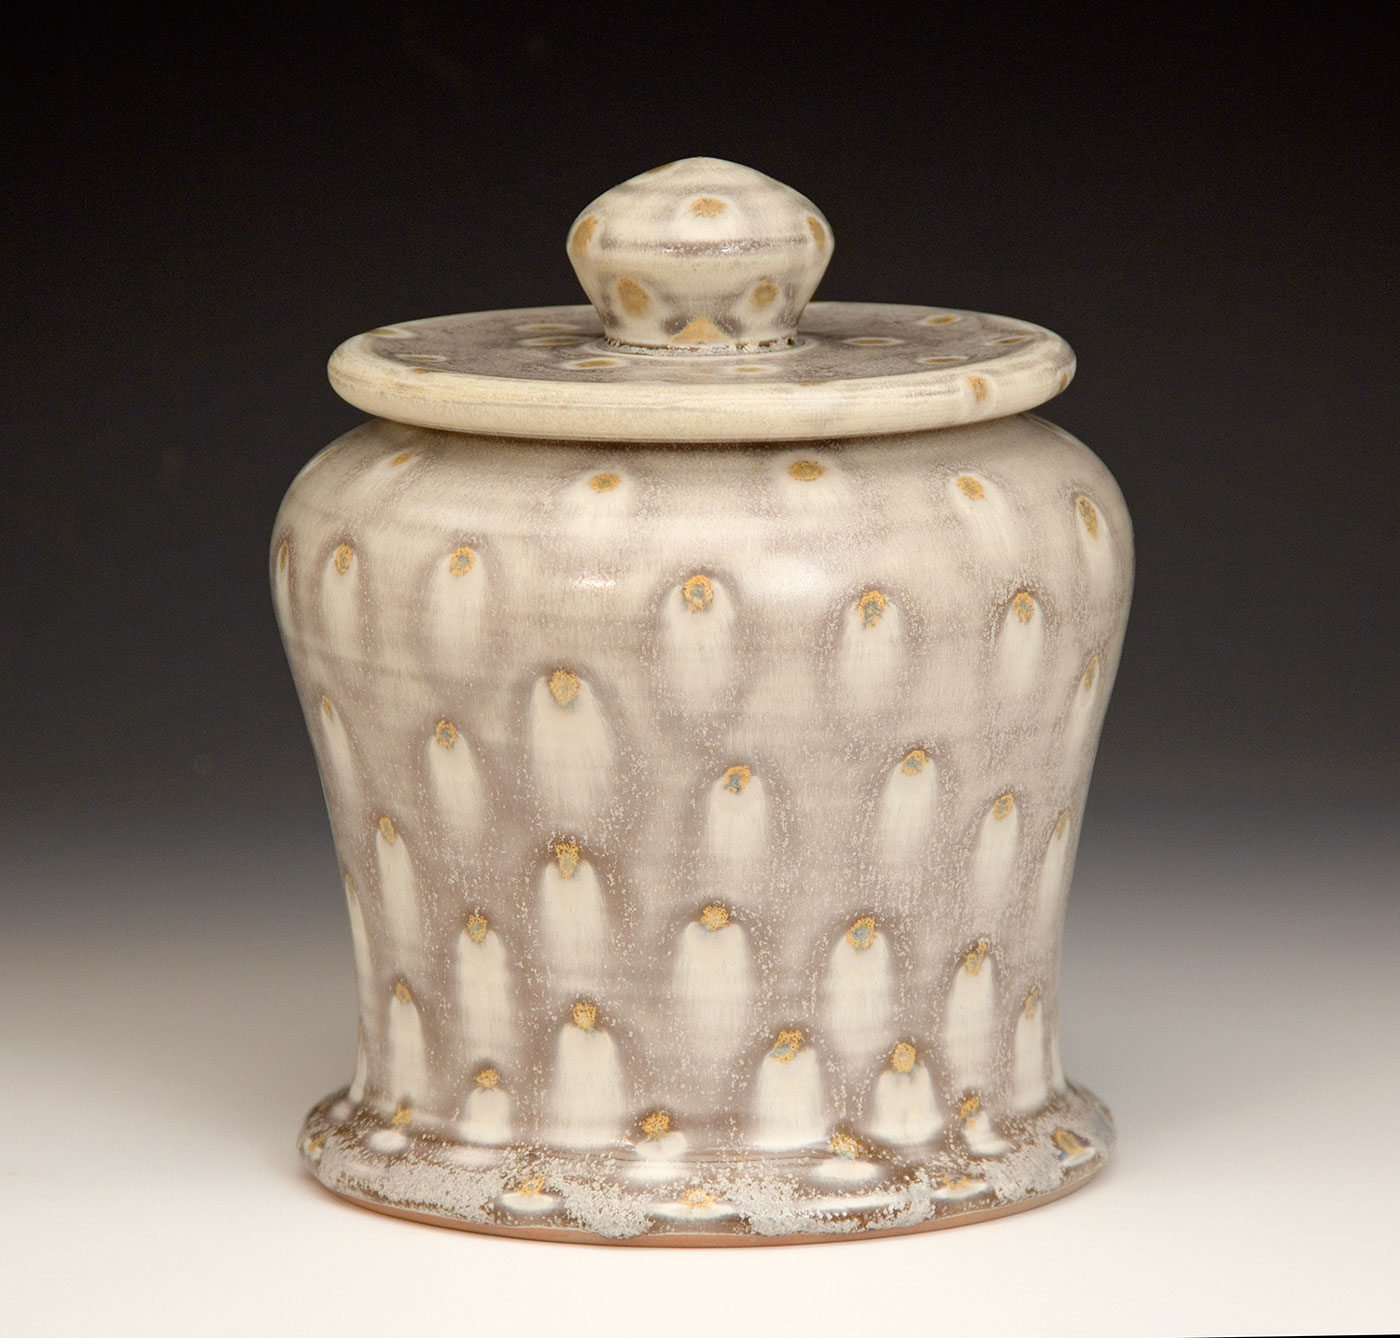 Covered-Jar-Samantha-Henneke-Seagrove-Pottery.jpg